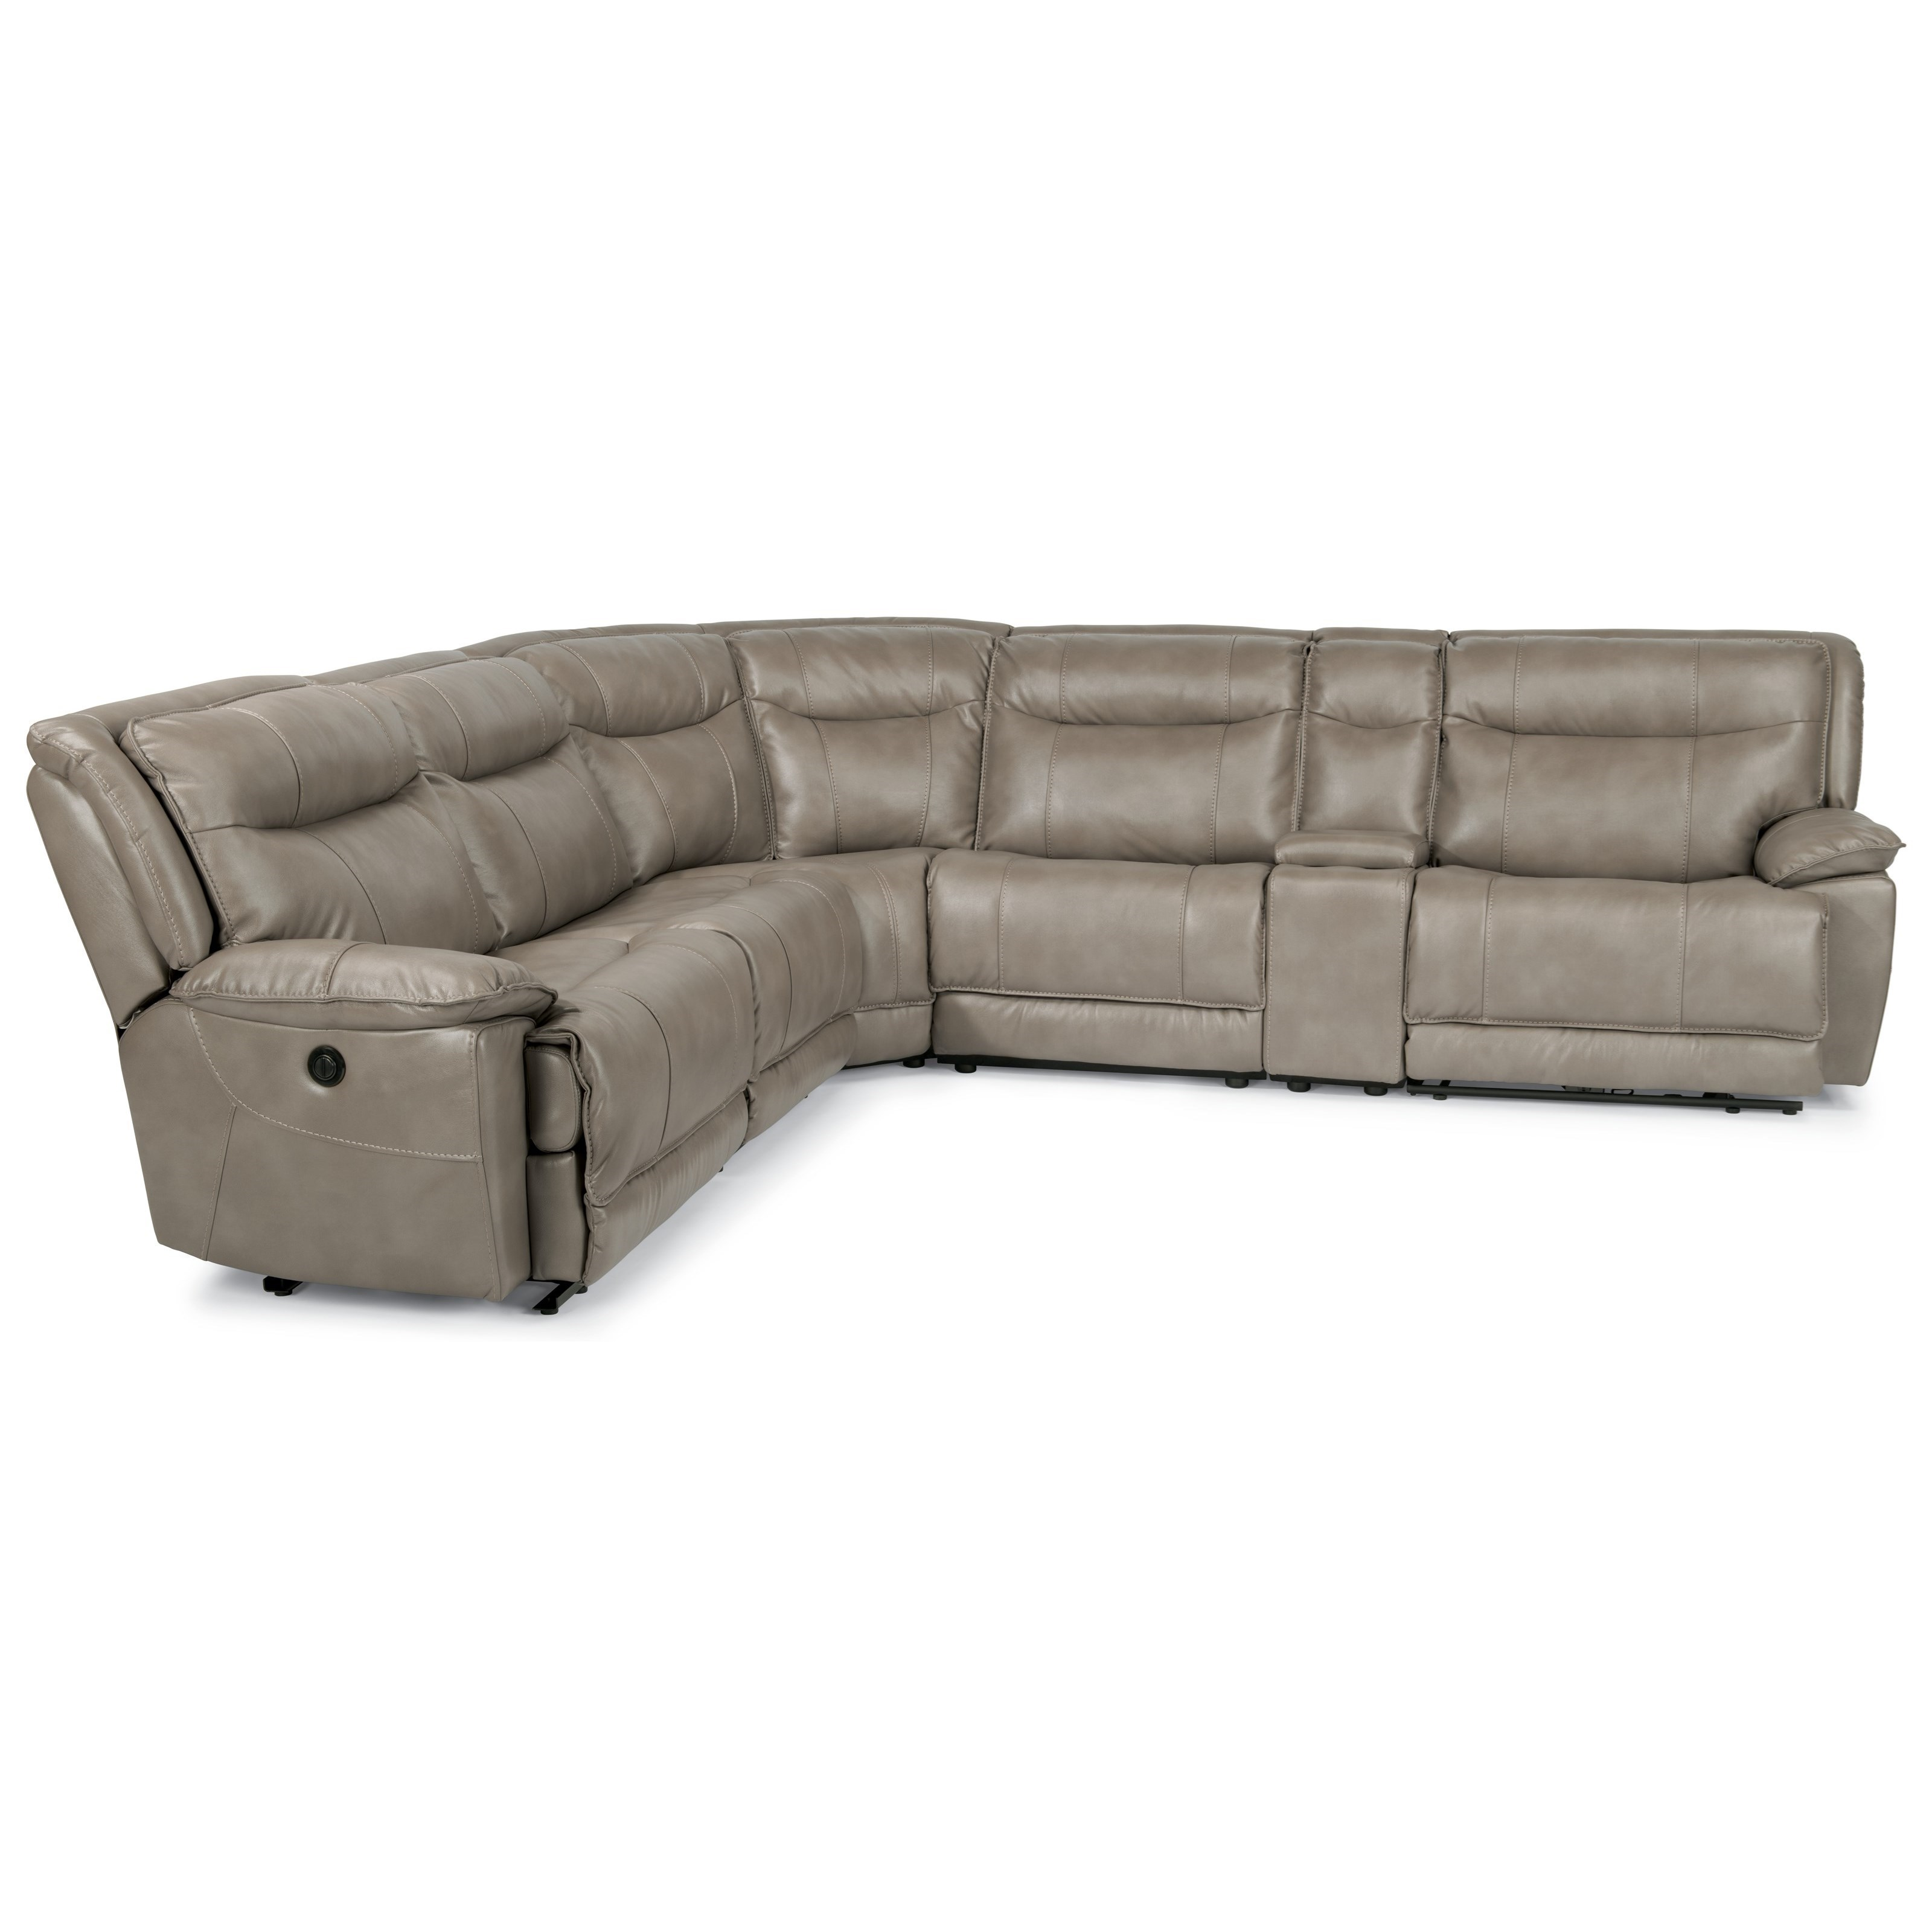 Flexsteel Latitudes Bliss Six Piece Reclining Sectional Sofa with